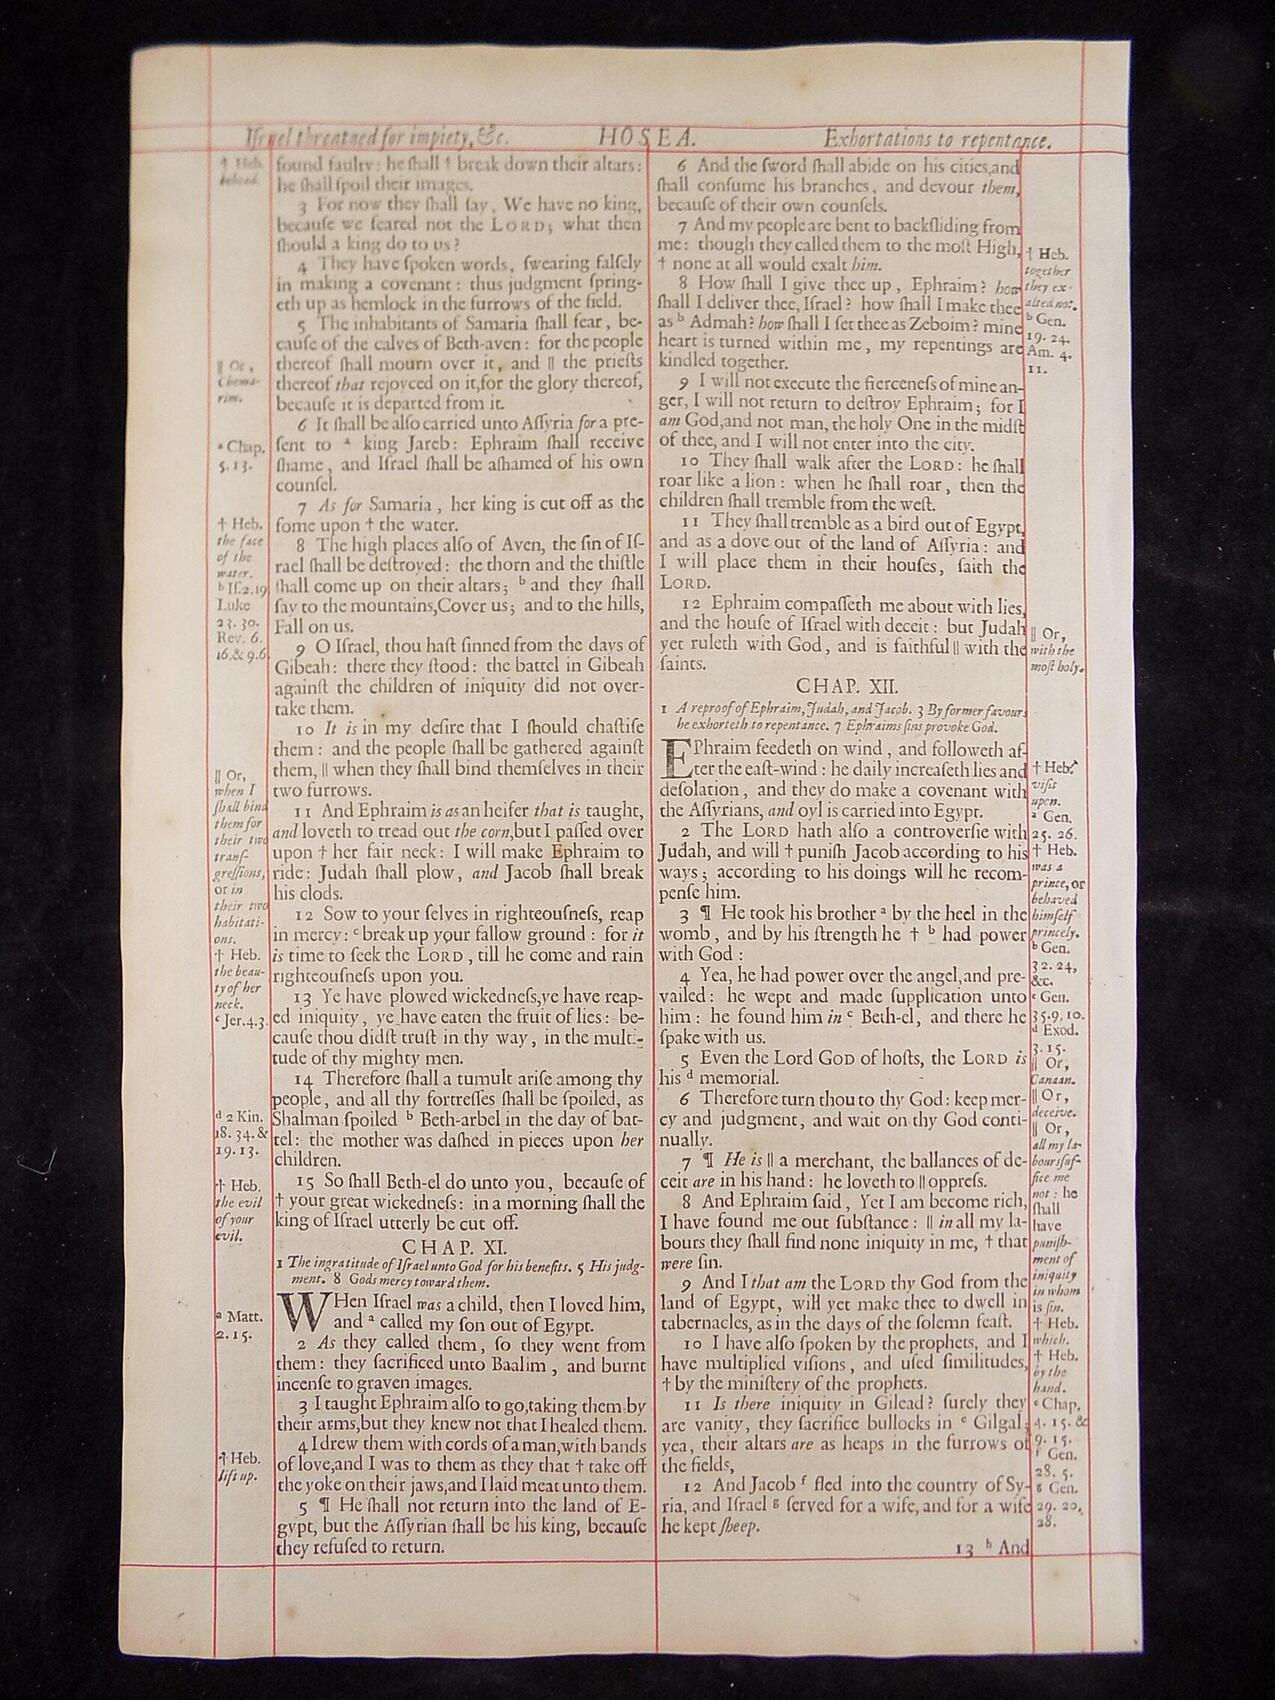 1680 OXFORD KJV HOSEA LEAVES